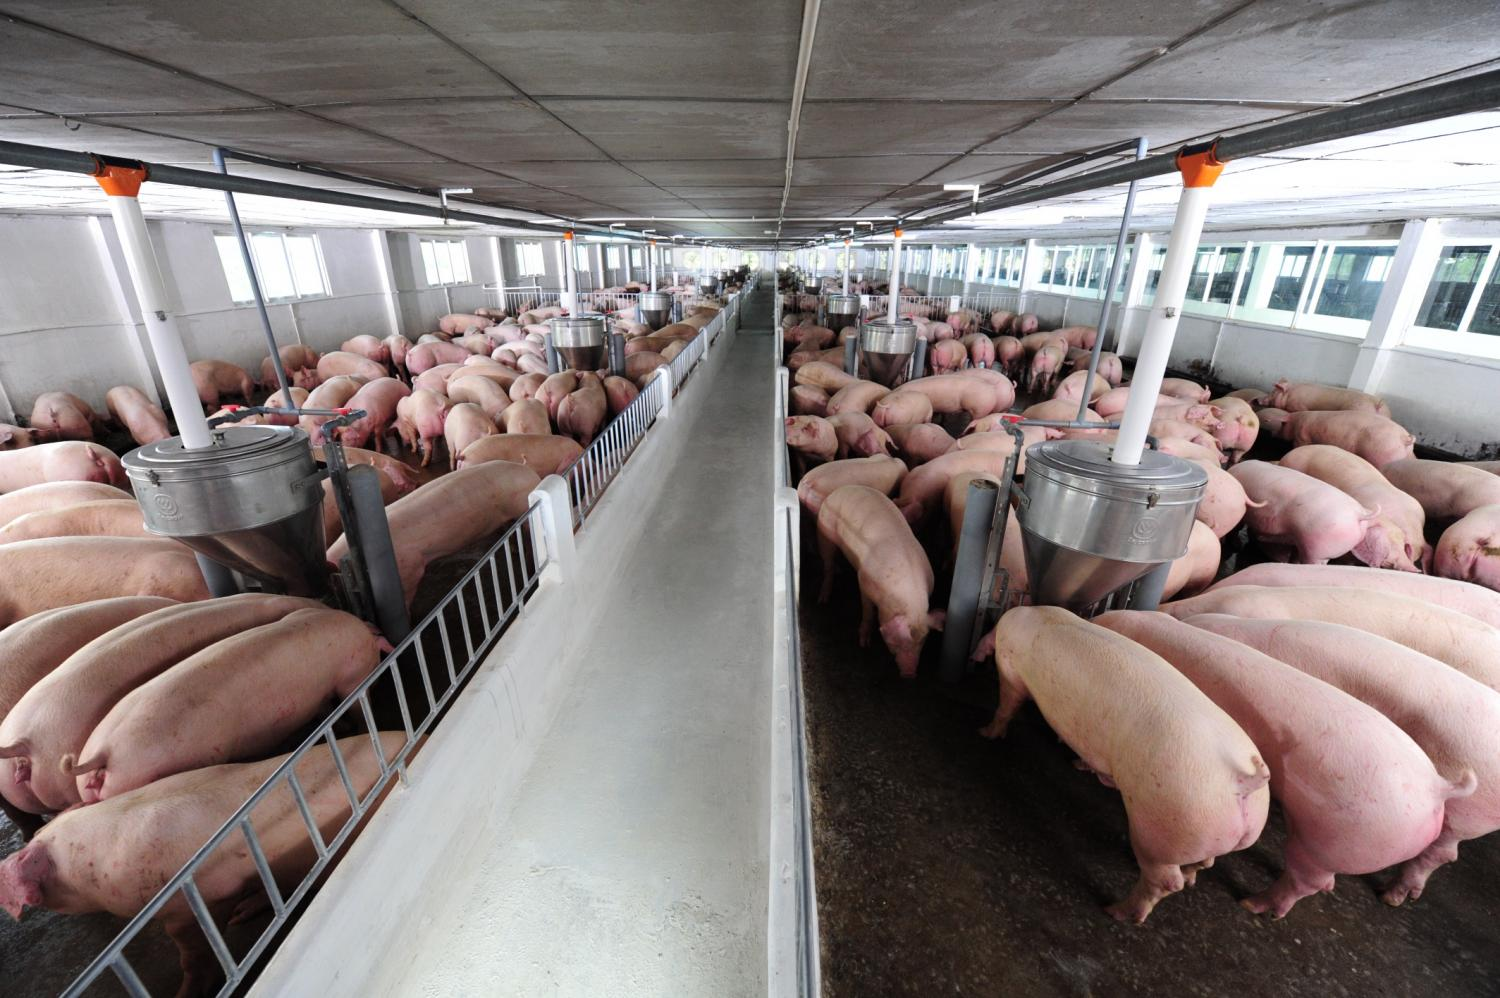 Main photo and left CP Vietnam's Loc Ninh farm in Binh Phuoc province is a 2,400-sow grandparent farm with 10,000 breeders. The company has rigorous measures in place to keep African Swine Fever at bay. Supplied/CP Vietnam